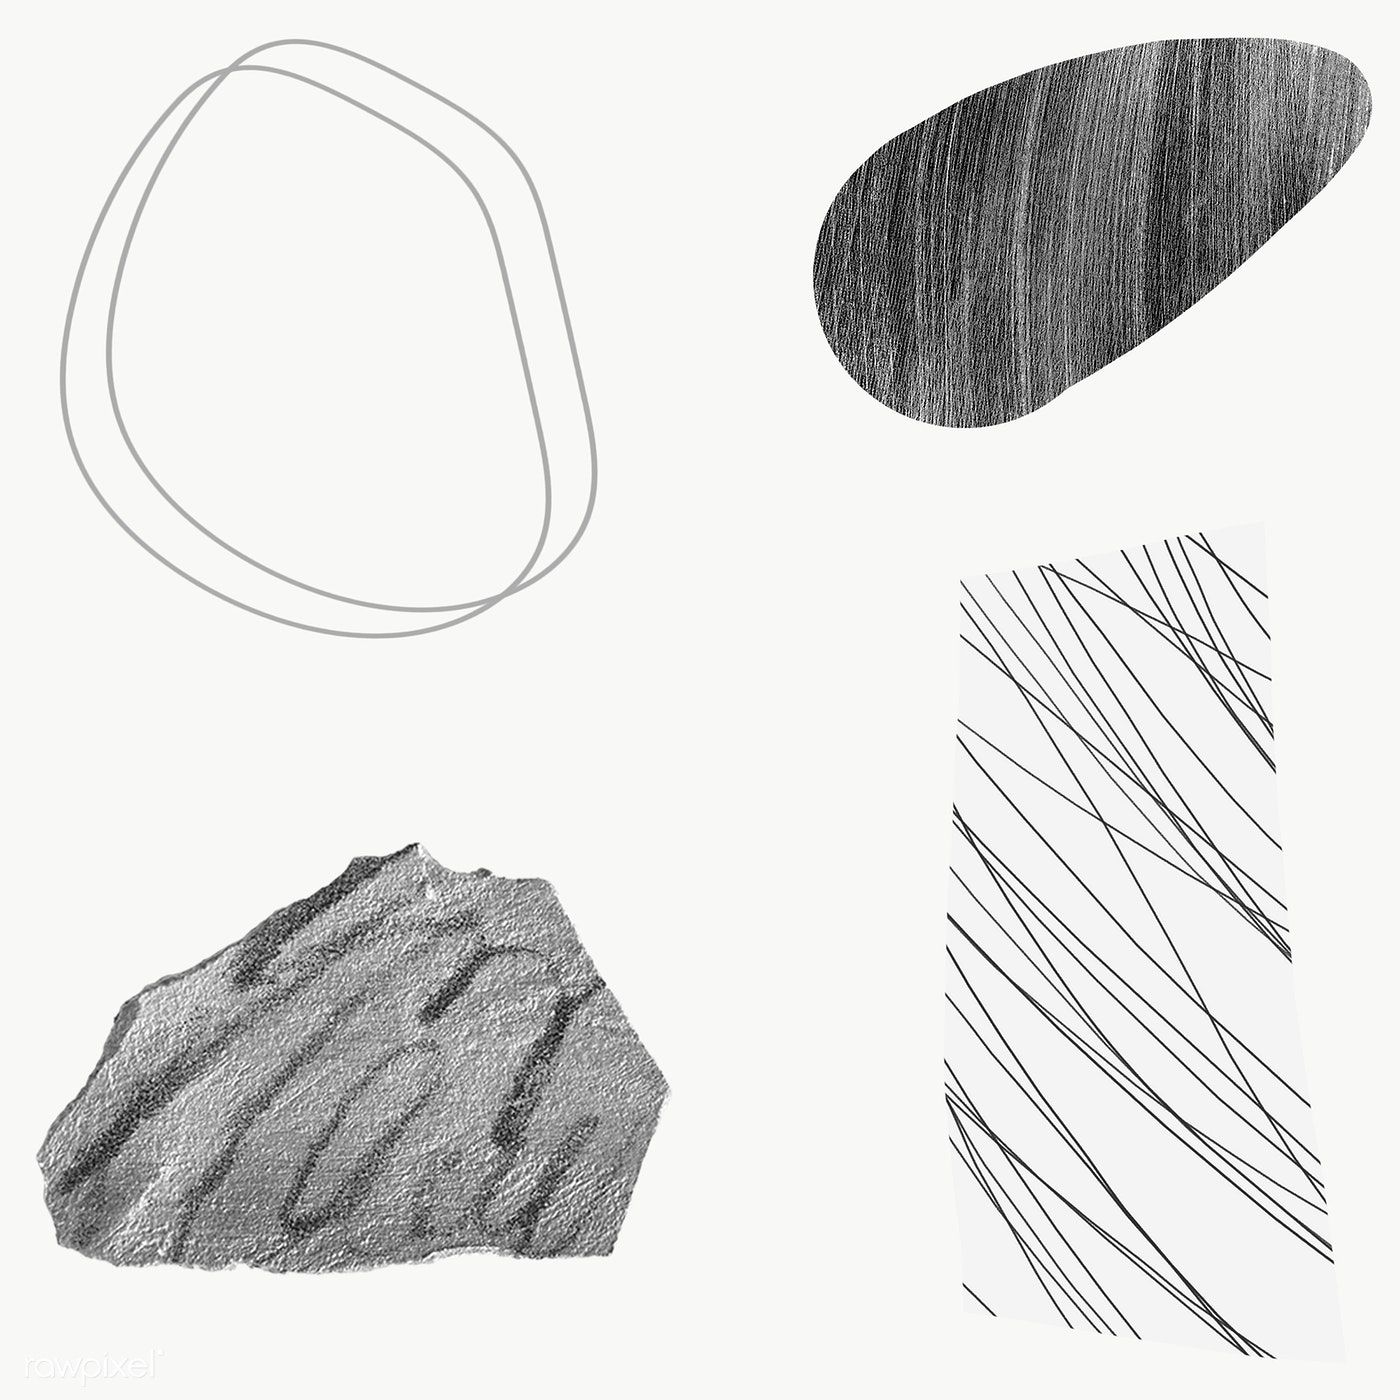 Scribble Strokes And Gray Stone Textures Design Element Collection Transparent Png Free Image By Rawpix Stone Texture Texture Design Black Texture Background